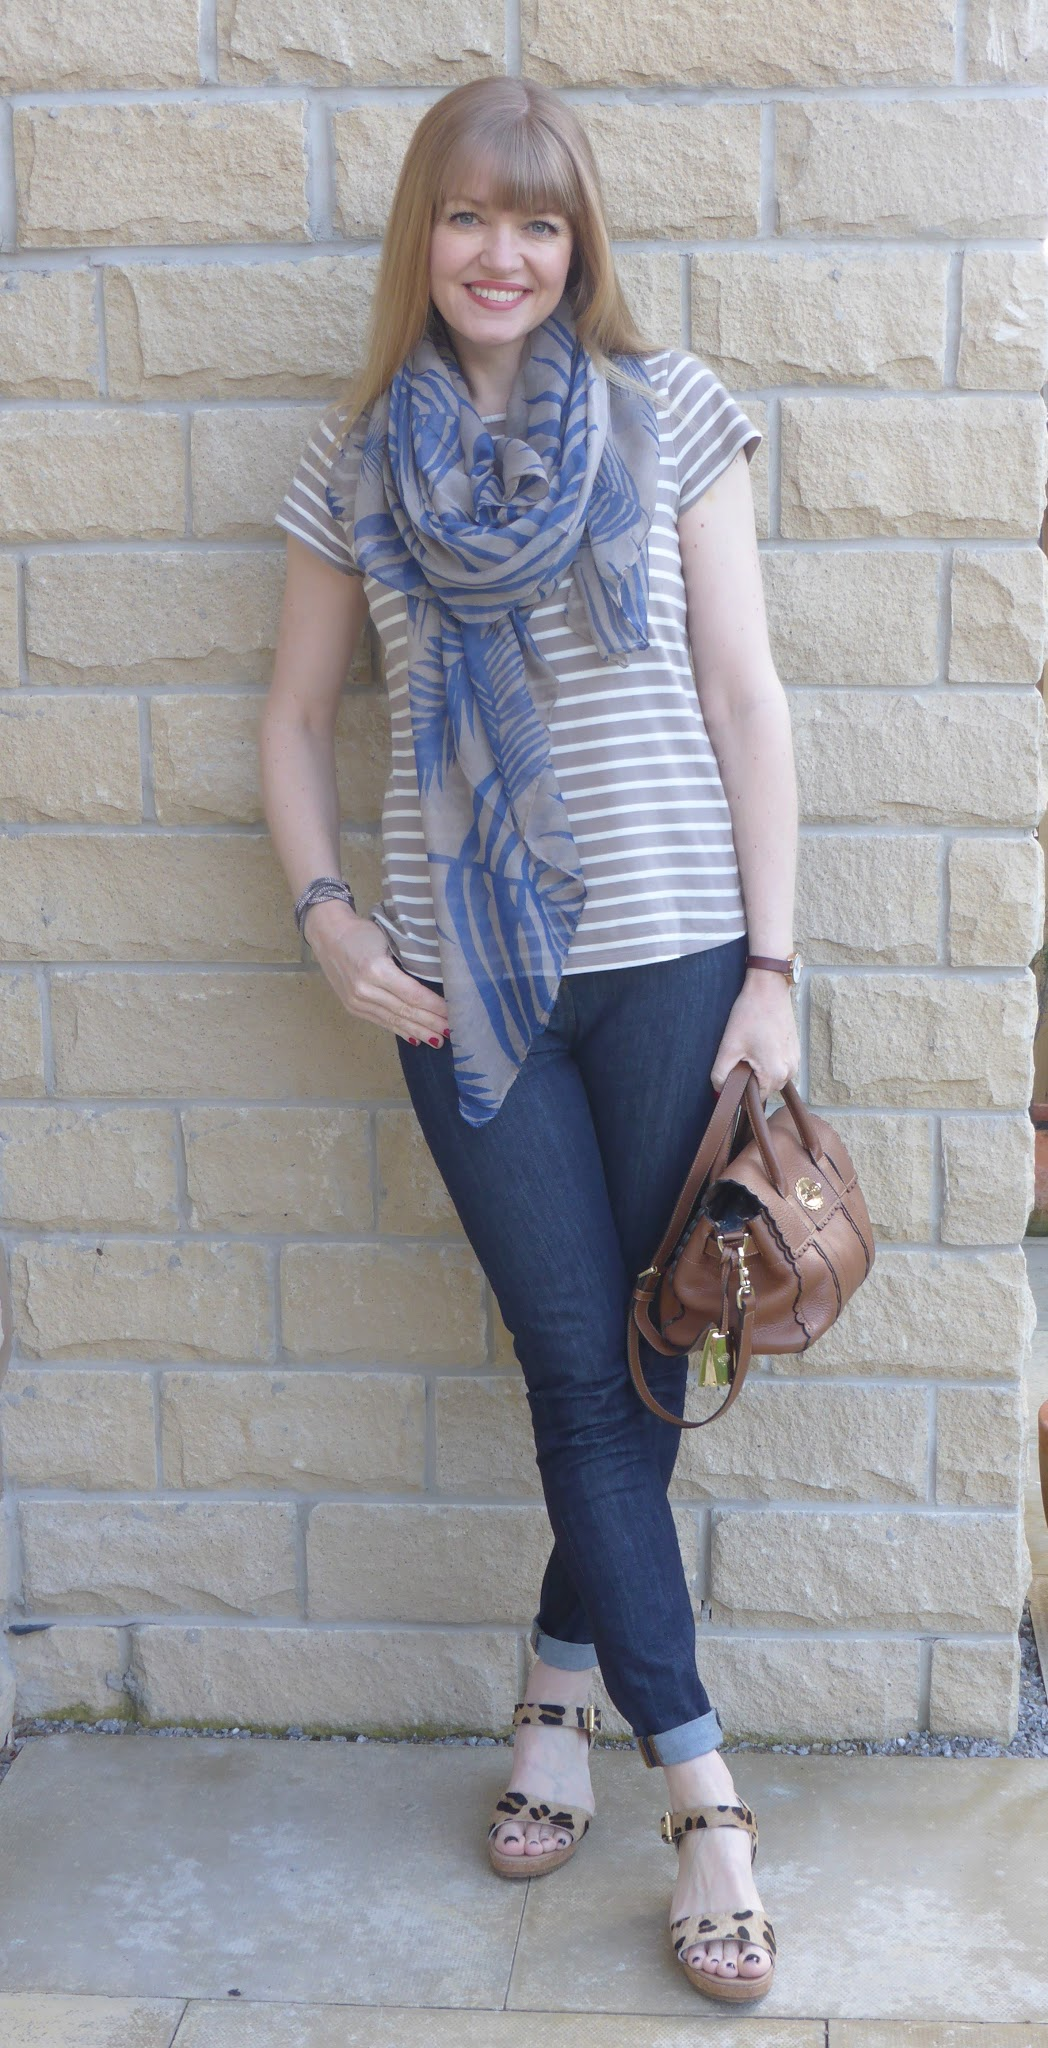 54a213f915c4 Over 40 fashion blogger, What Lizzy Loves wearing Boden short-sleeved  breton with Boden